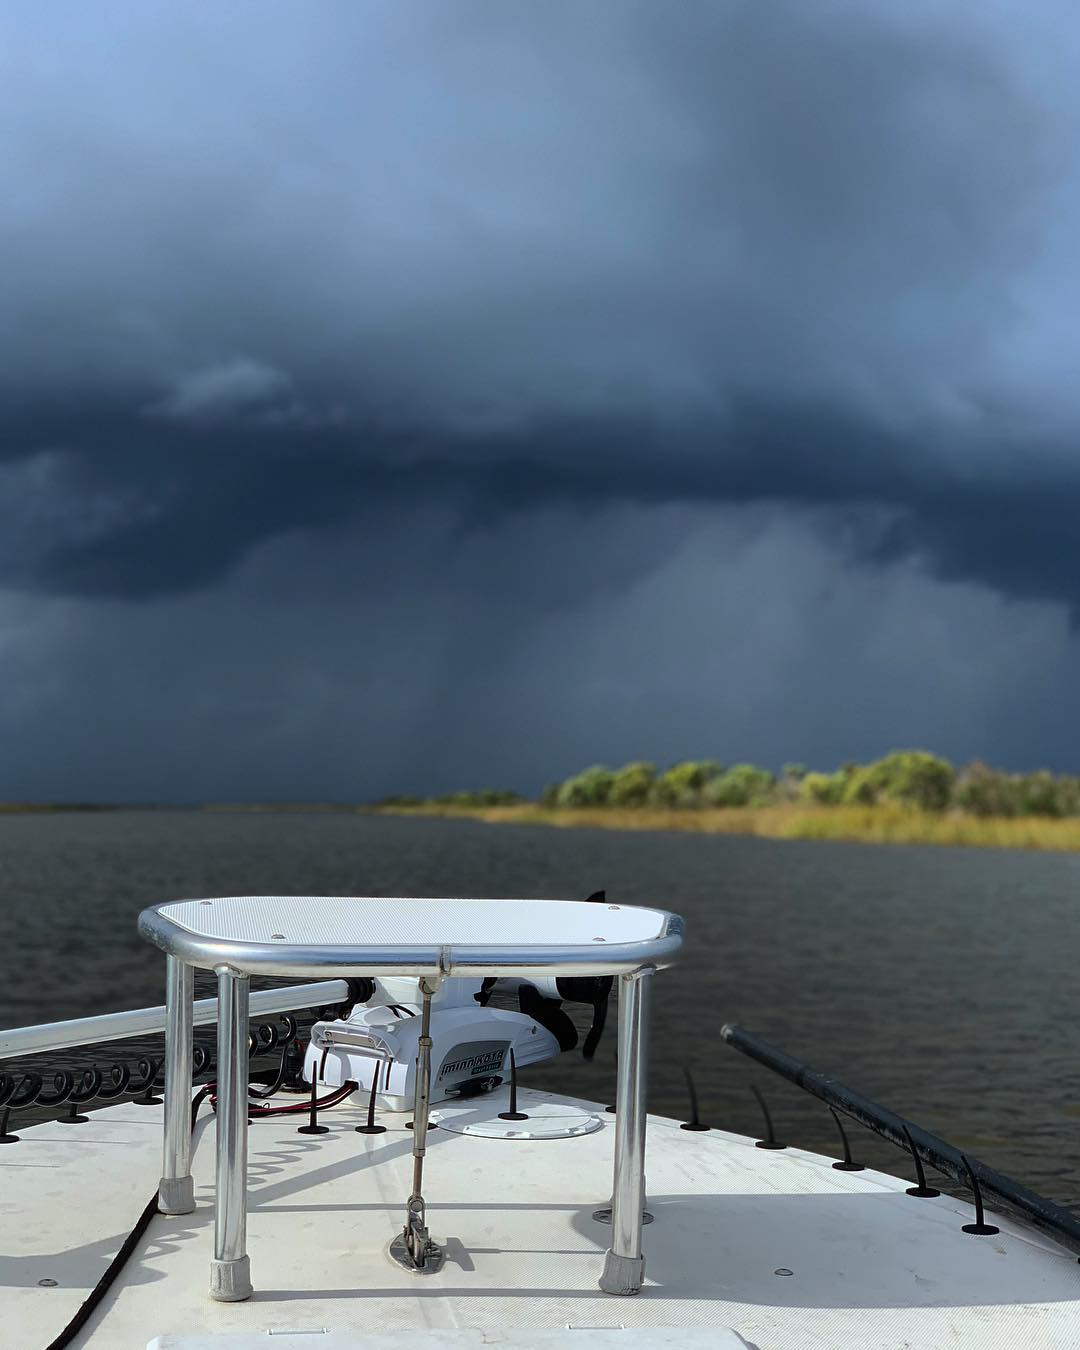 Good time stalking bull redfish and dodging storms